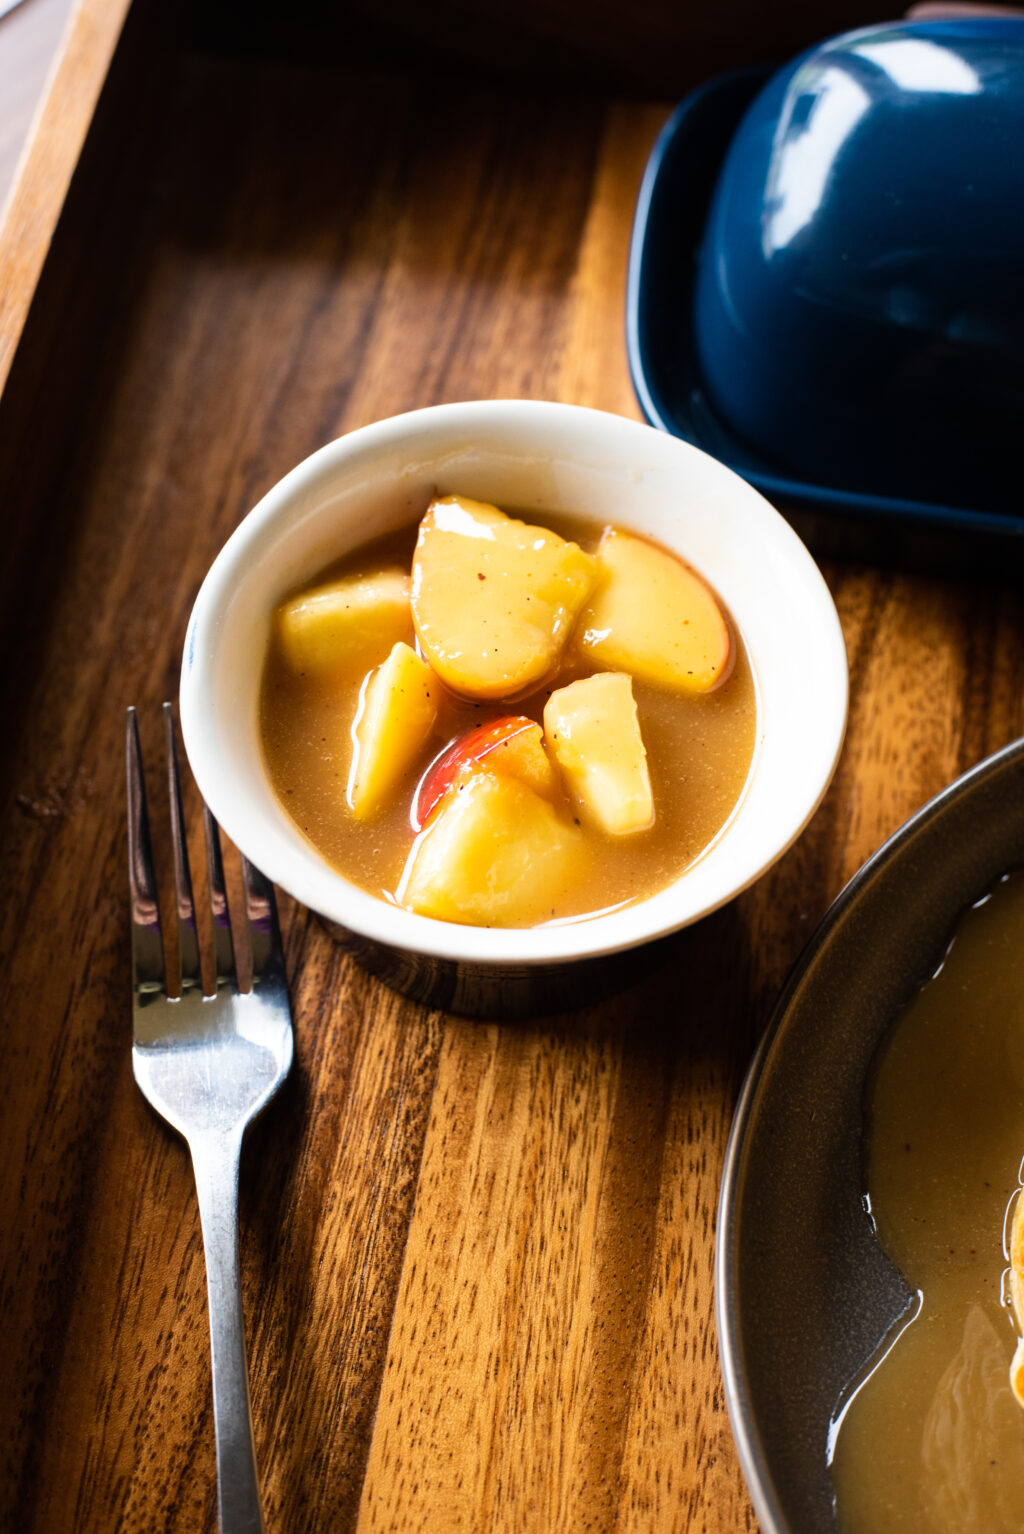 small bowl of caramelized apples